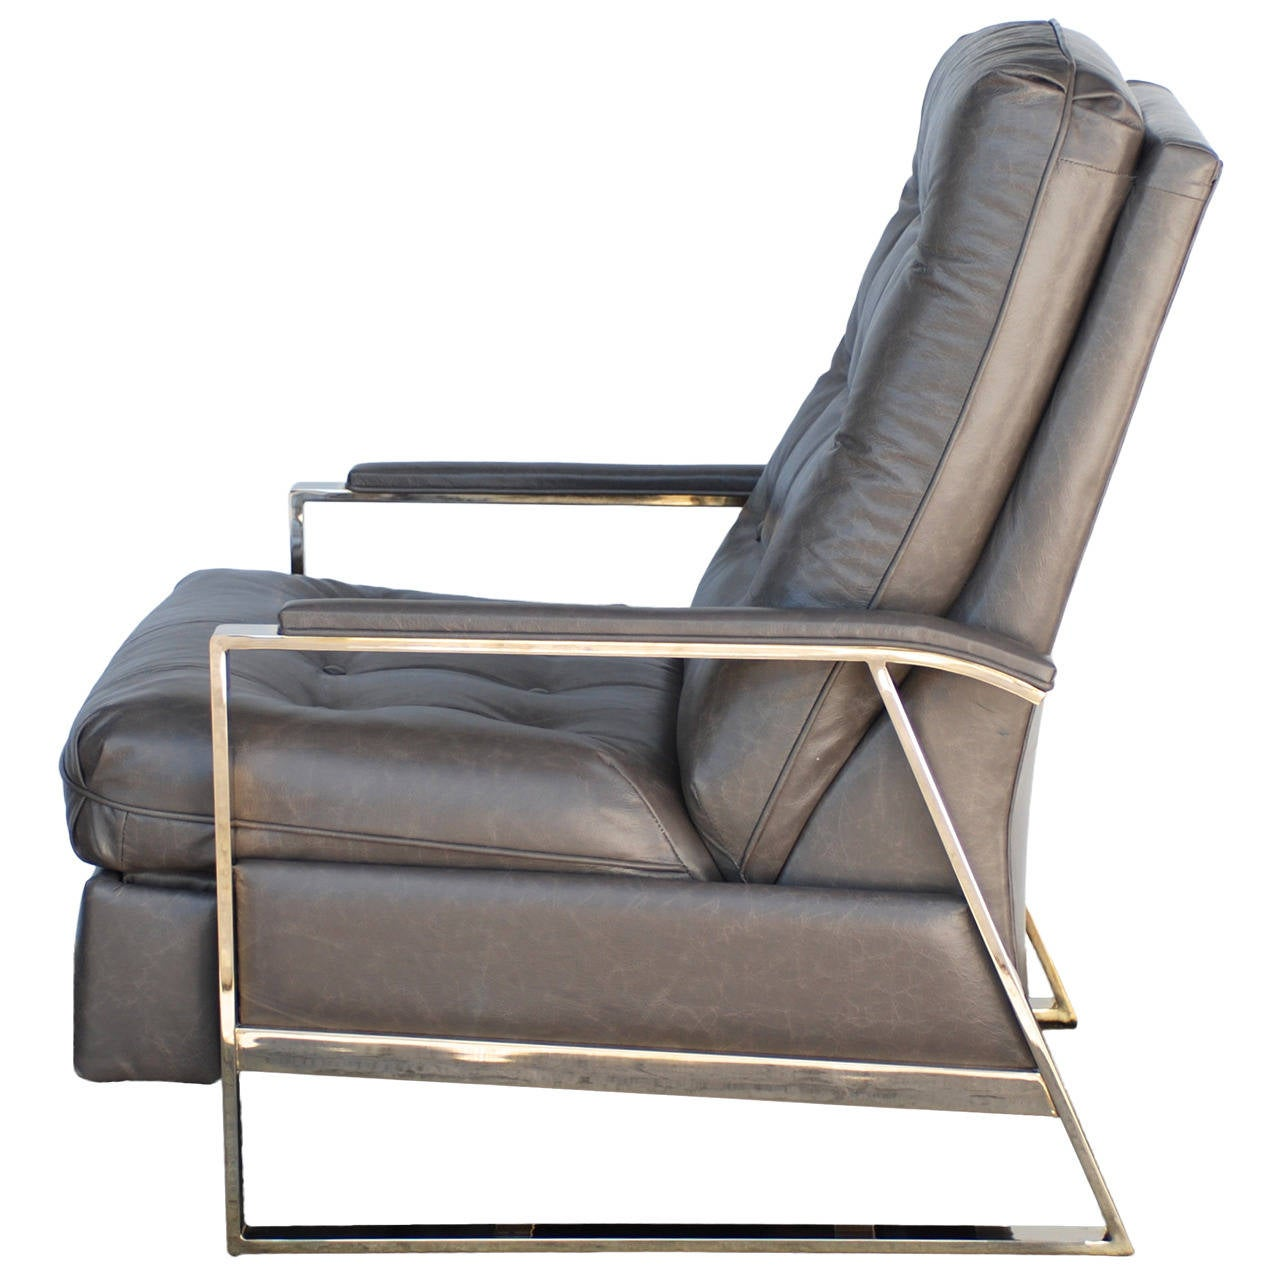 Baughman Grey Leather Recliner 1  sc 1 st  1stDibs & Baughman Grey Leather Recliner at 1stdibs islam-shia.org